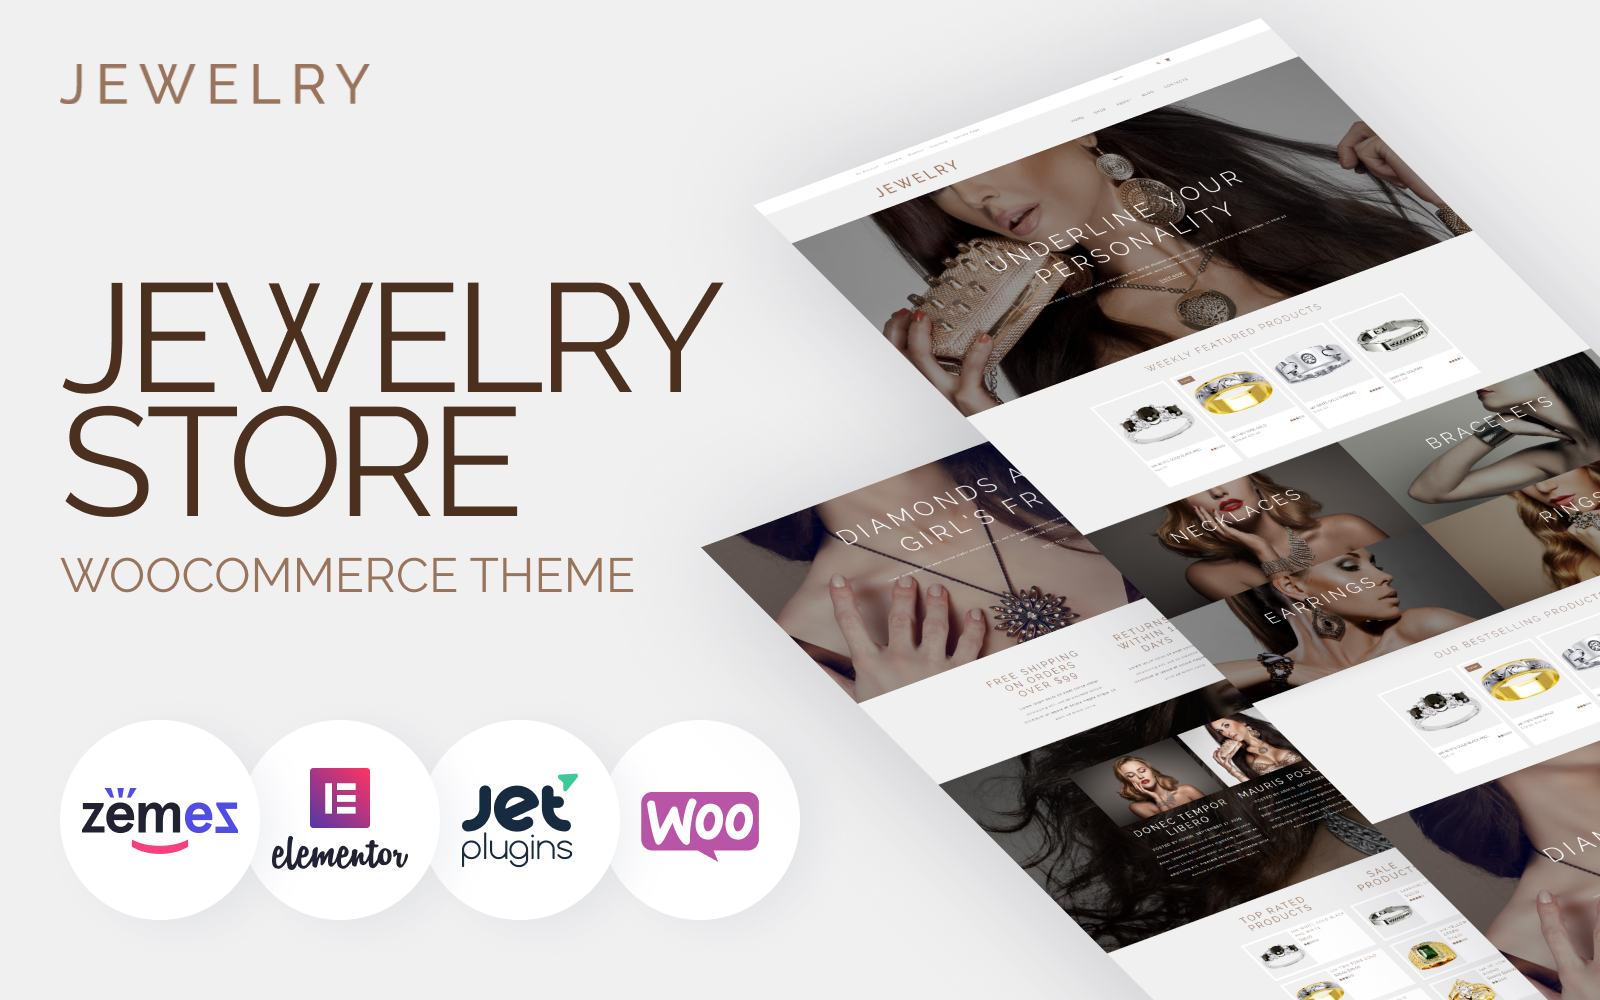 """Jewelry - Jewelry Website Design Template for Online Shops"" 响应式WooCommerce模板 #53421"